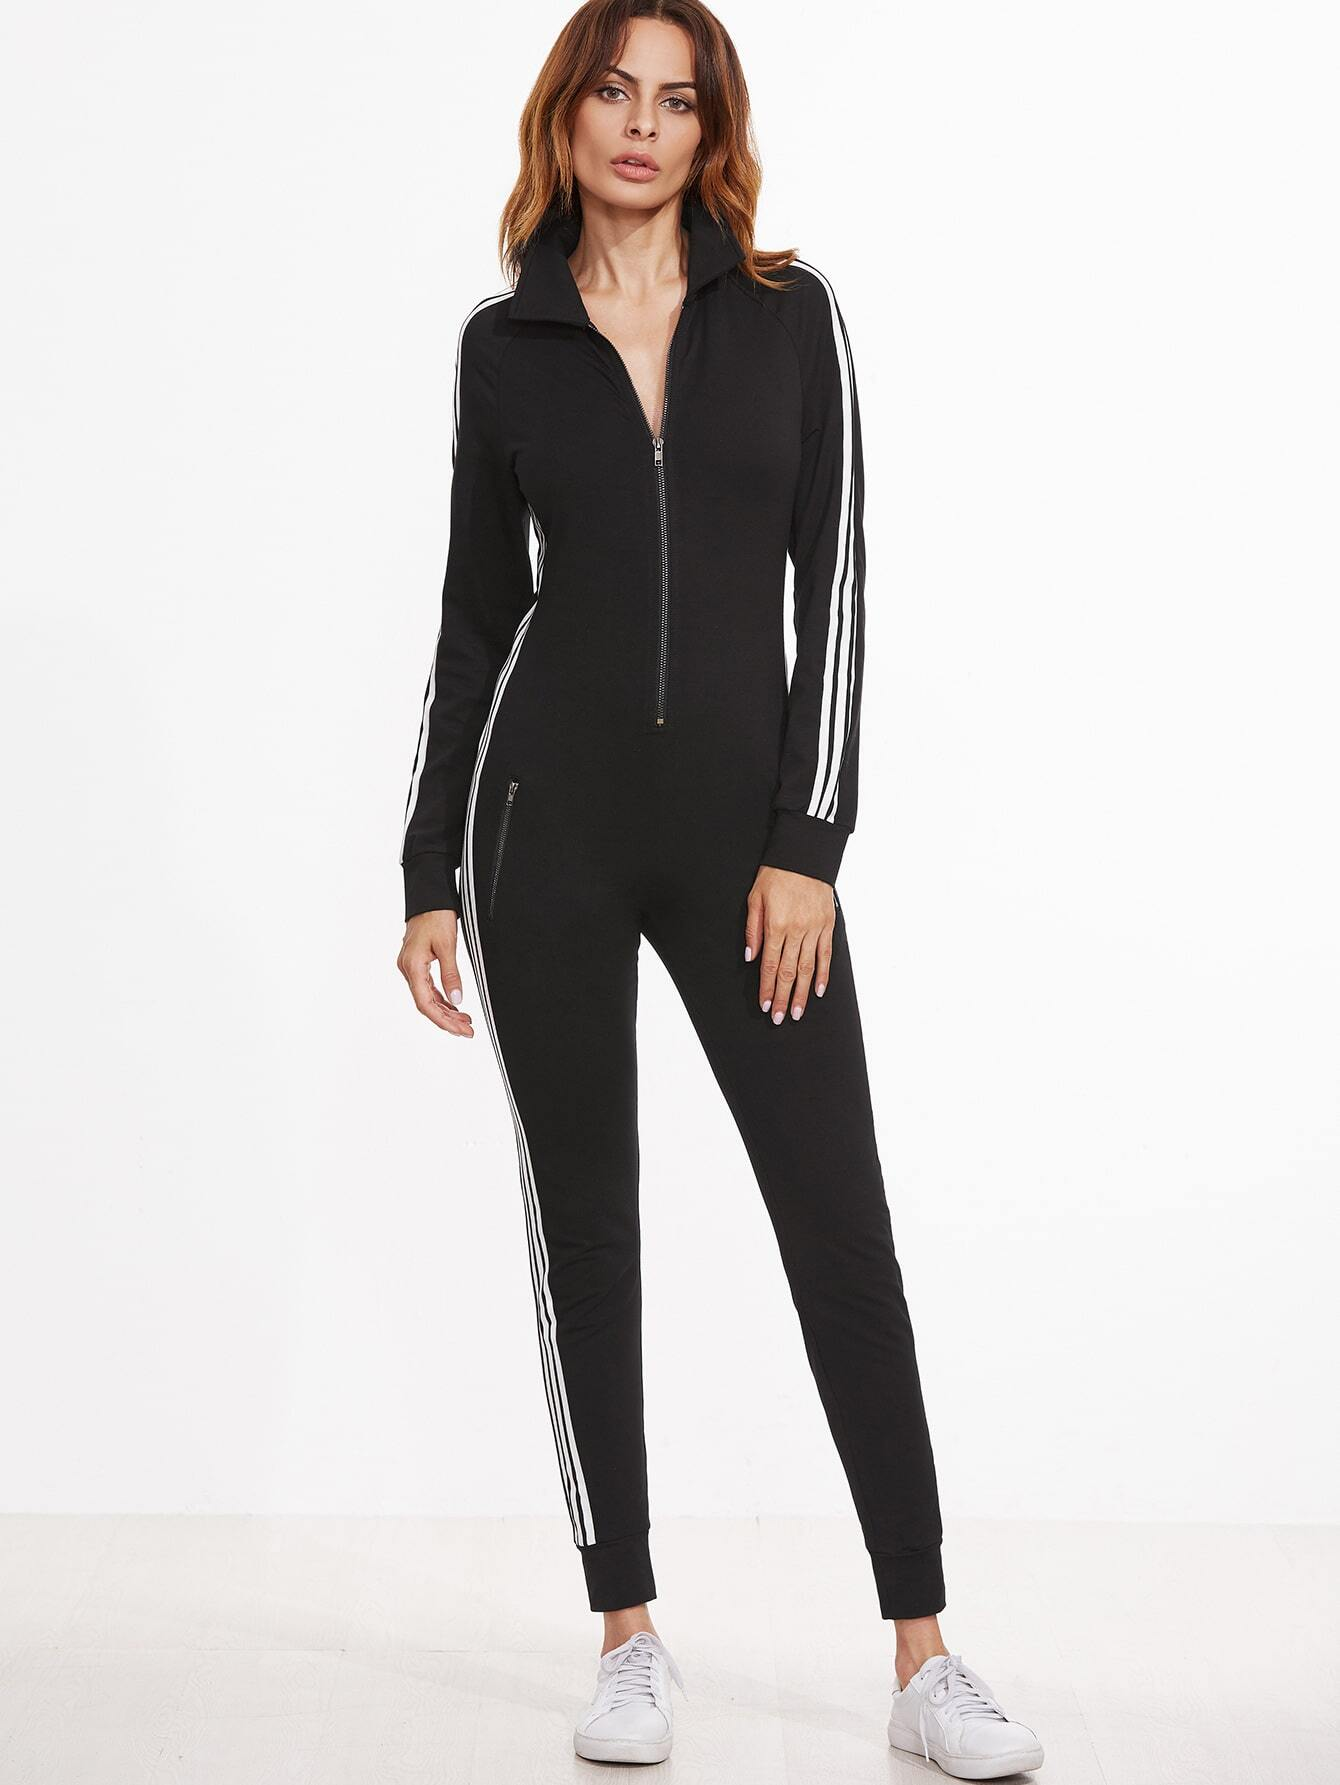 Black Striped Sideseam Zip Up Skinny Sweat Jumpsuit pictures